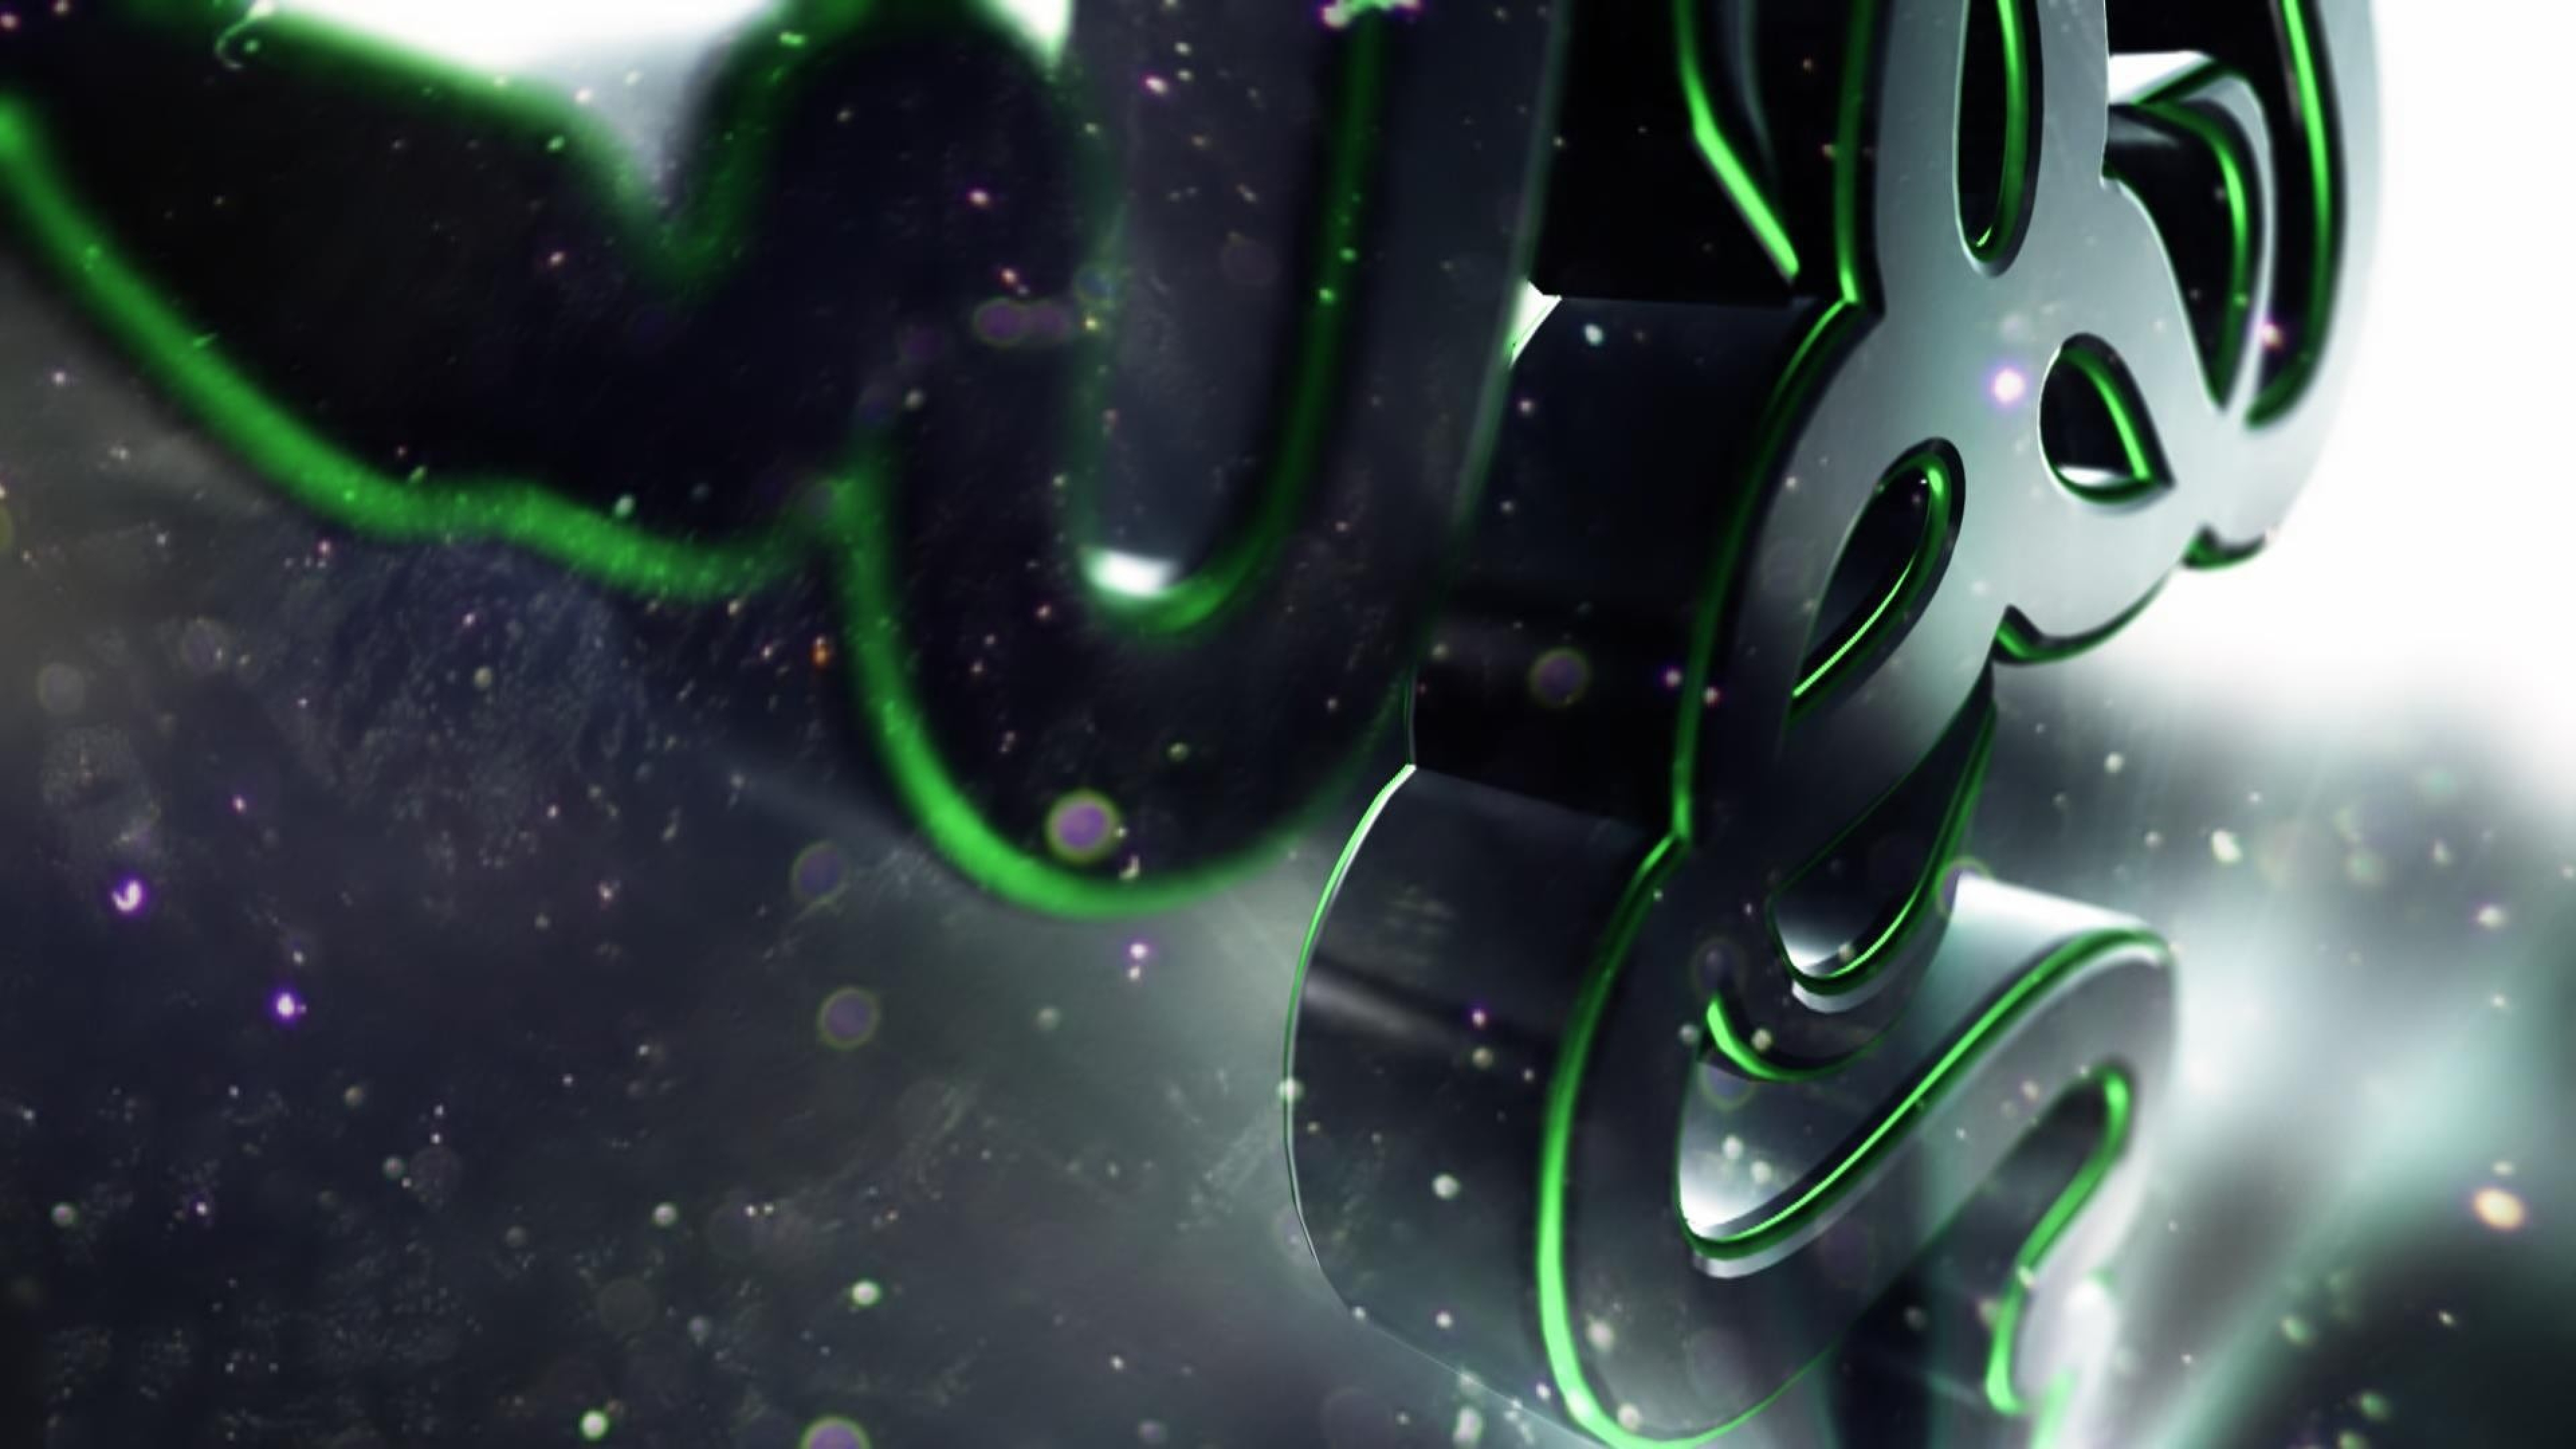 Download Wallpaper 3840x2160 Razer Logo Symbol Shape 4K Ultra HD HD 3840x2160